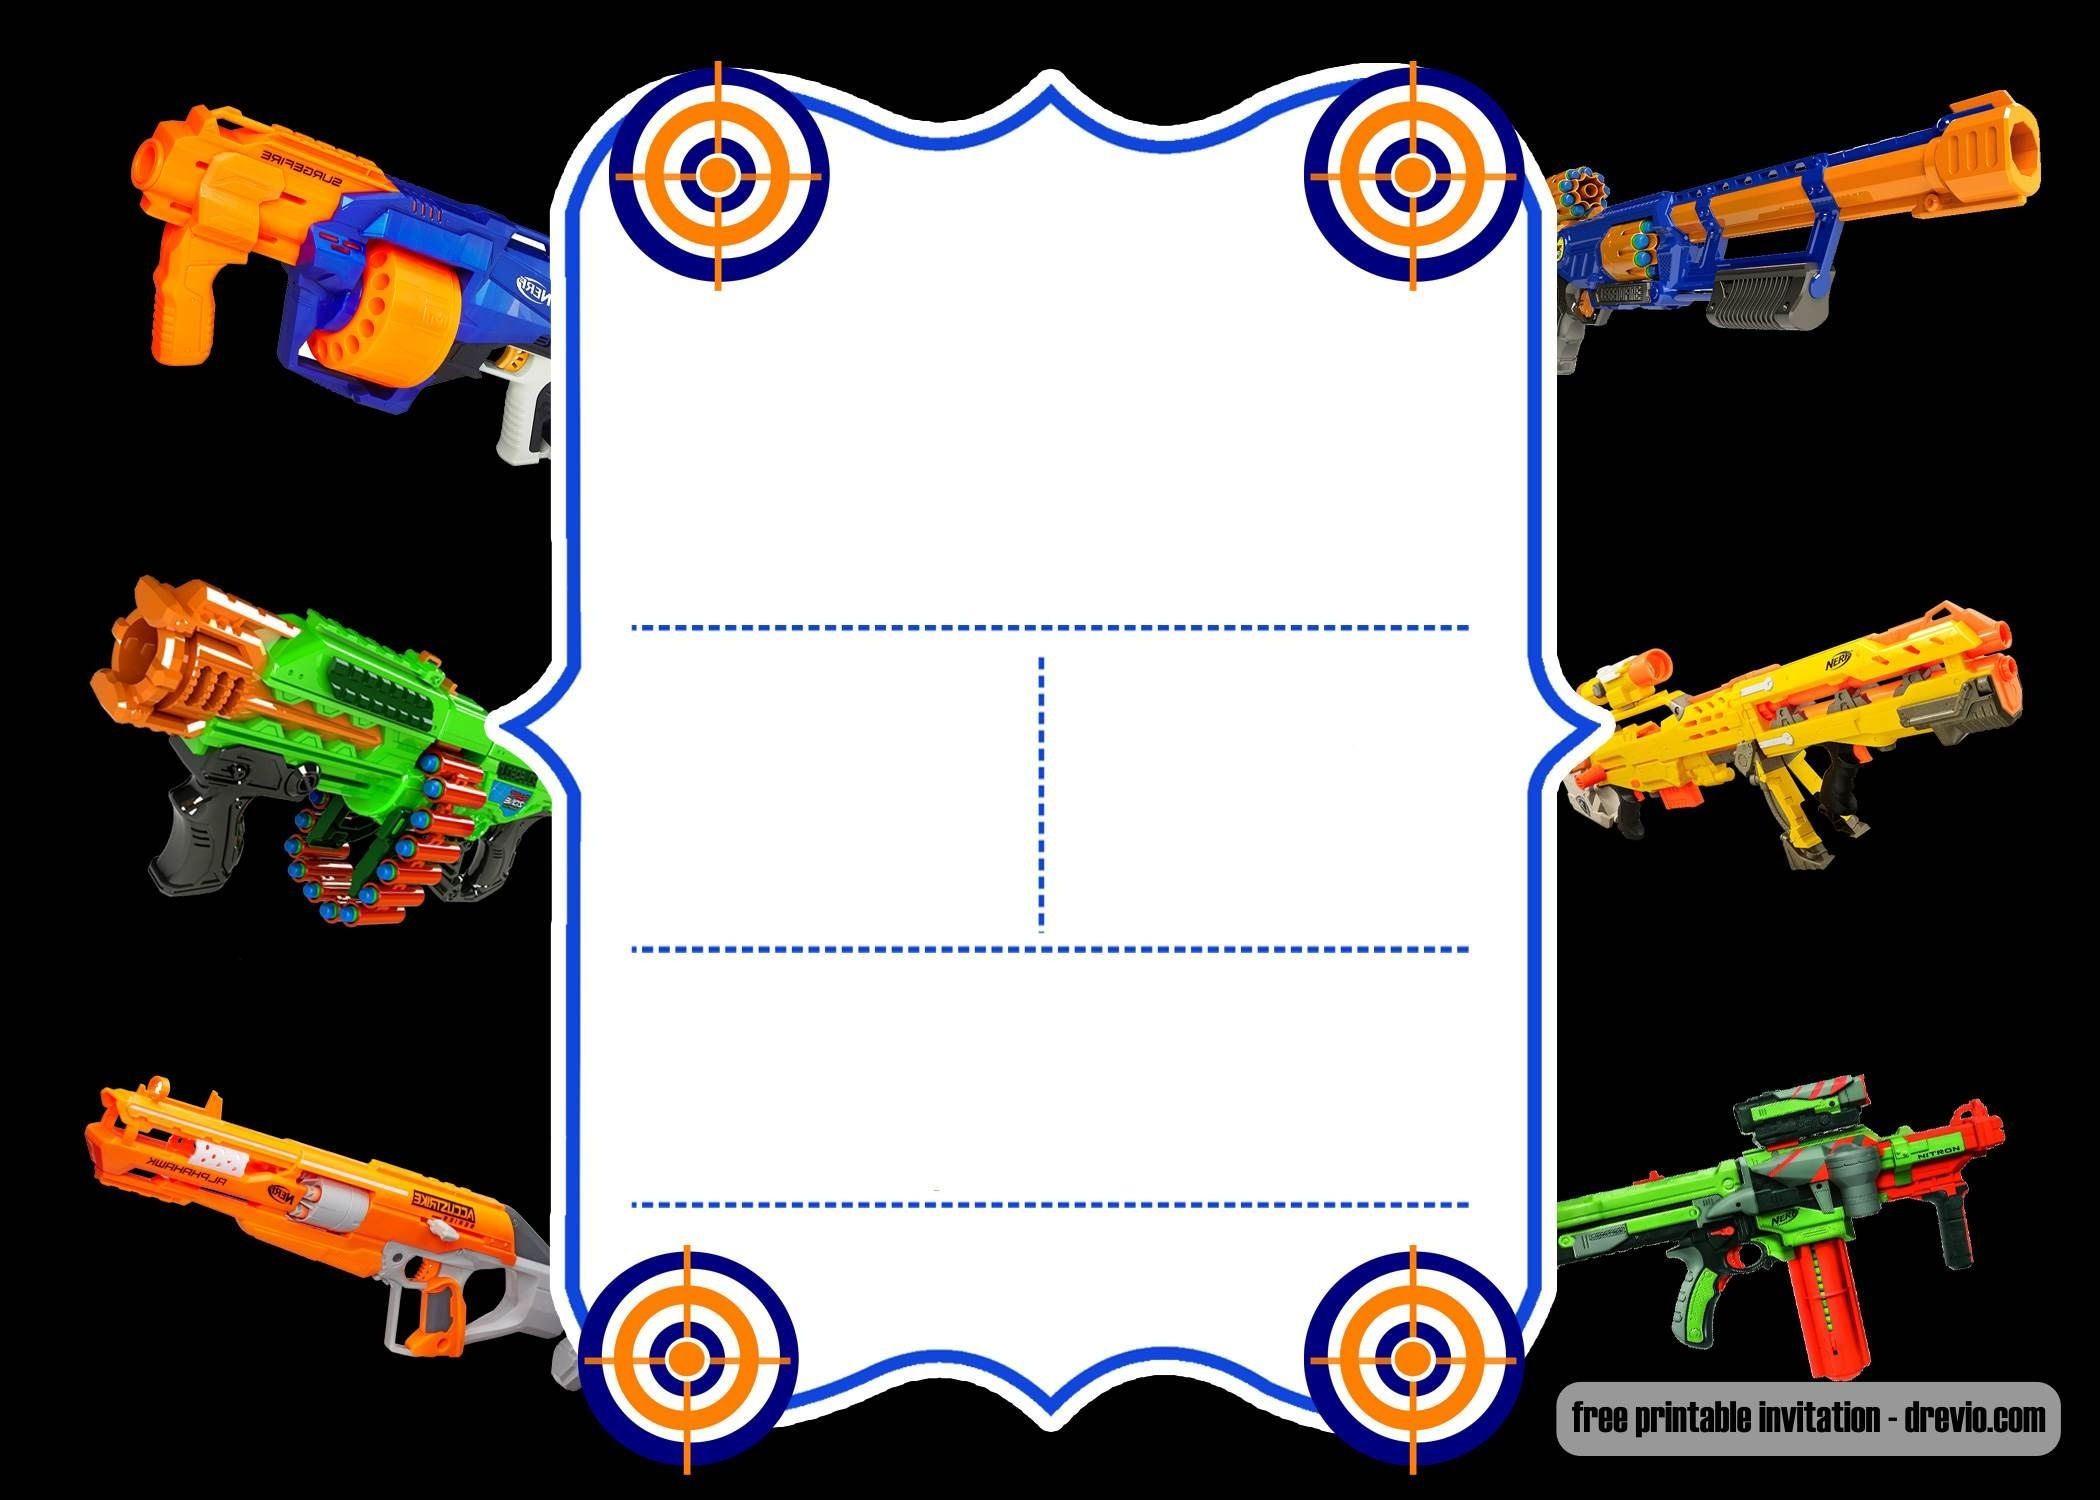 Free Printable Nerf Invitation Template - New | Free Printable - Free Nerf Printables